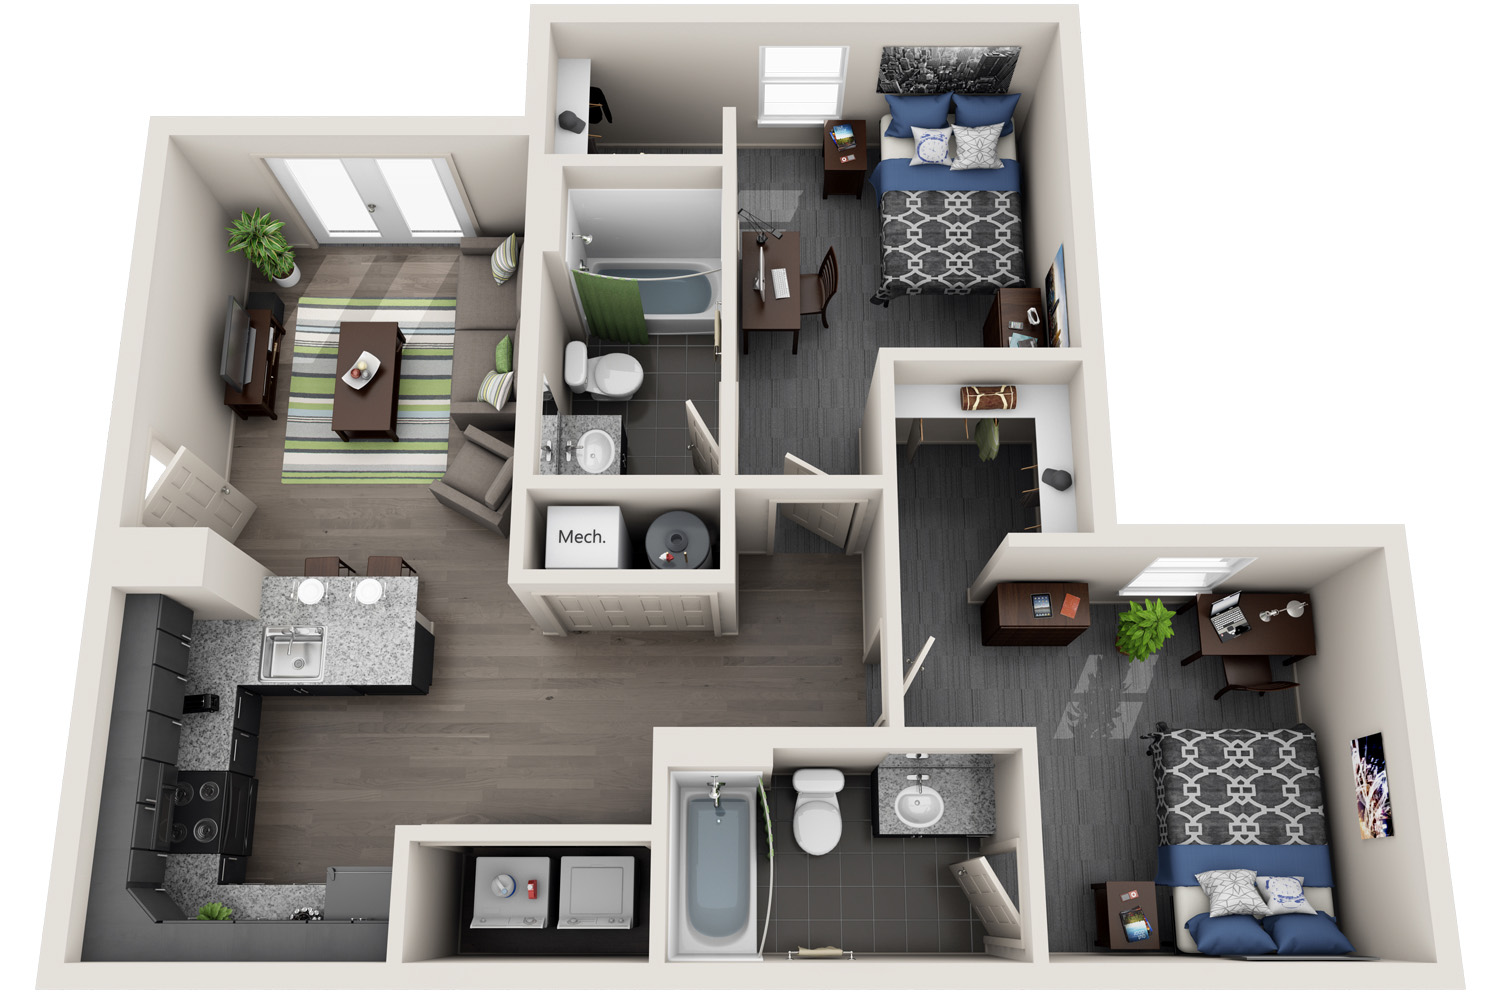 2 bedroom student housing off cus apartment 10011 | 2 bedroom 3d copy